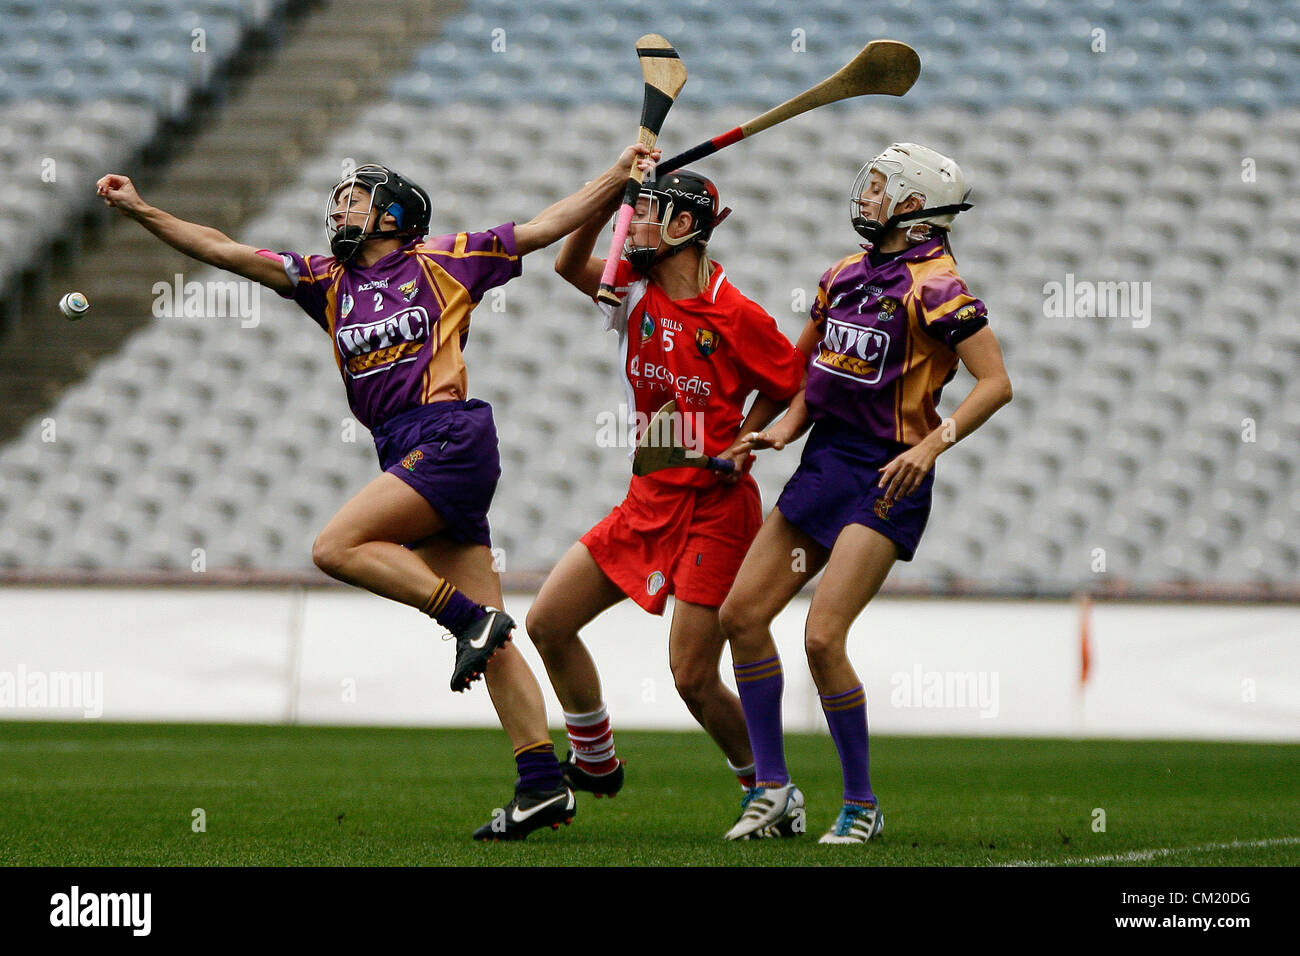 REPRO FREE - 16 September 2012 - Croke Park,  DUBLIN- Ireland - Claire O'Connor of Wexford with Eimear O'Sullivan - Stock Image